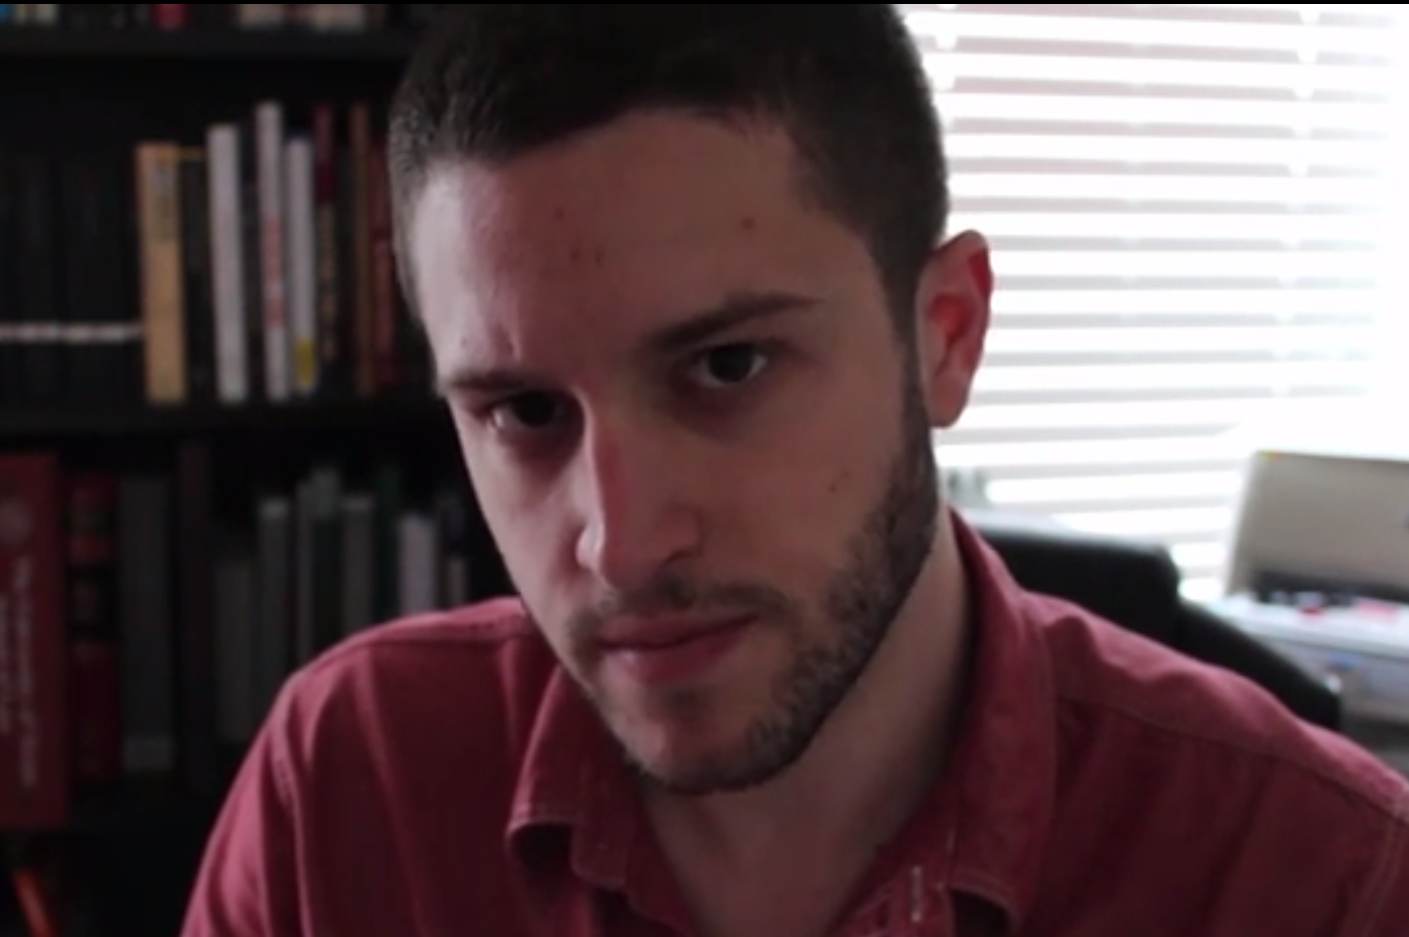 Cody Wilson makes digital files that let anyone 3D print untraceable guns The government tried to stop him He suedand won